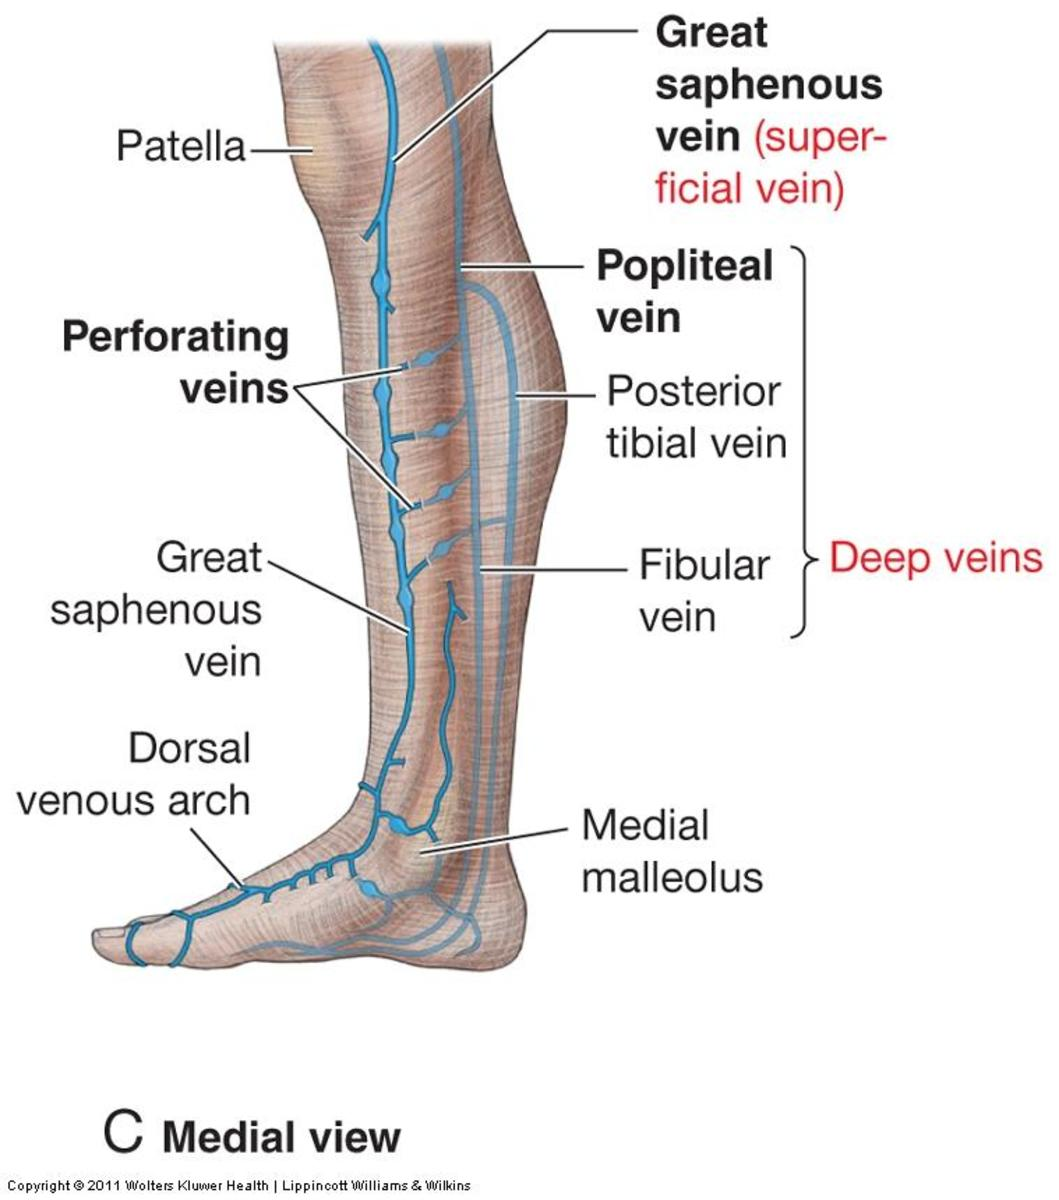 Diagram showing The saphenous veins and perforator veins.